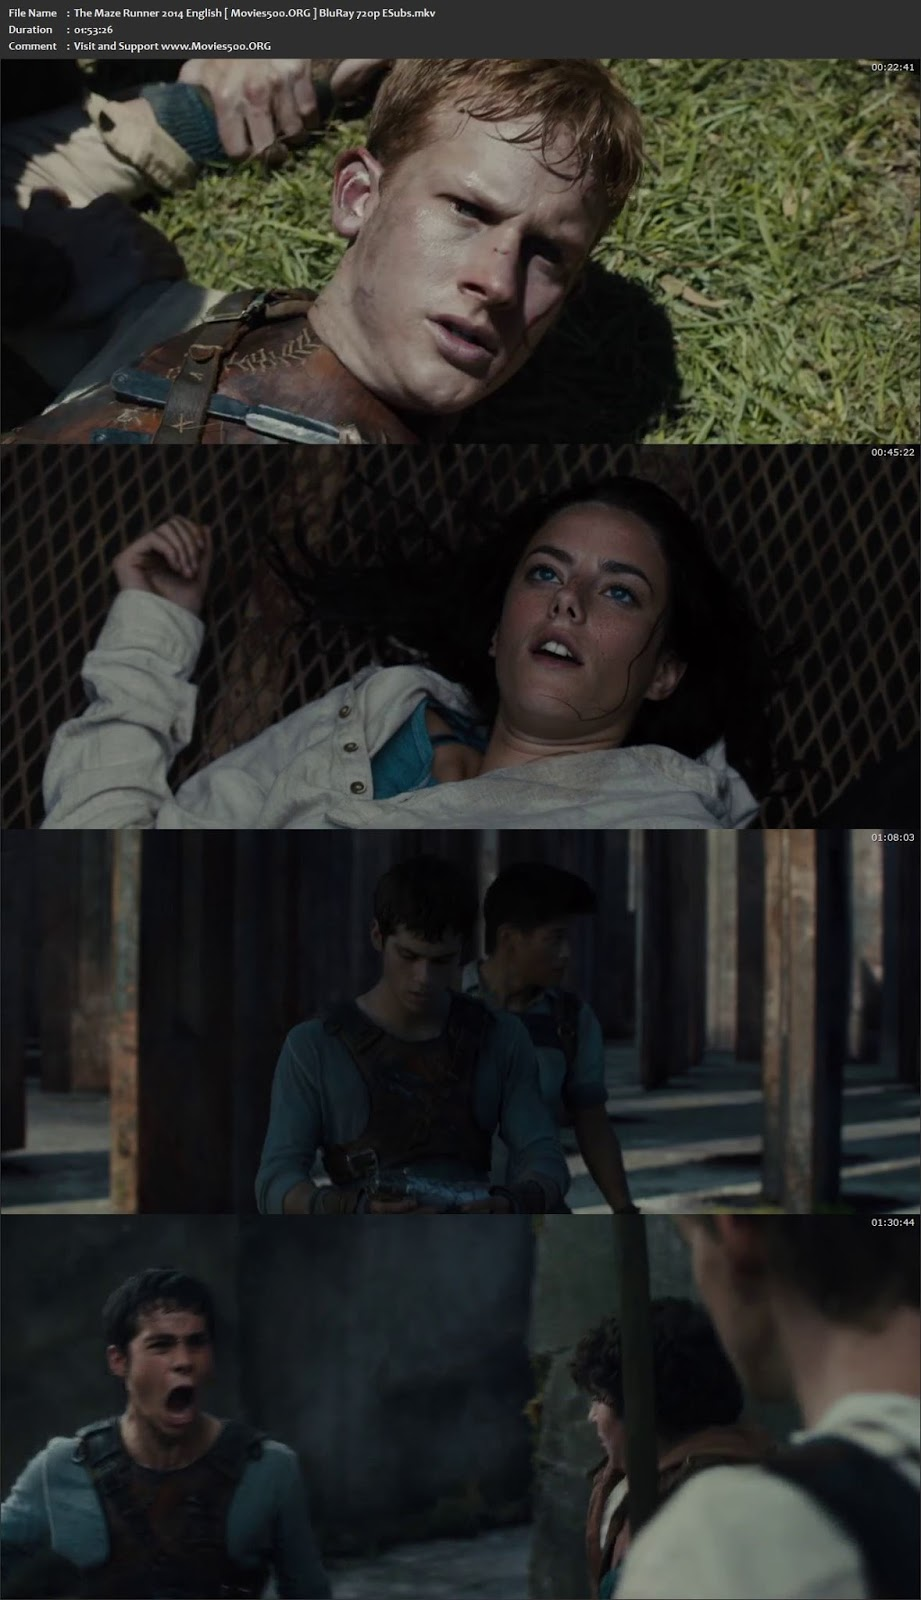 The Maze Runner 2014 English BluRay 720p ESubs at movies500.site